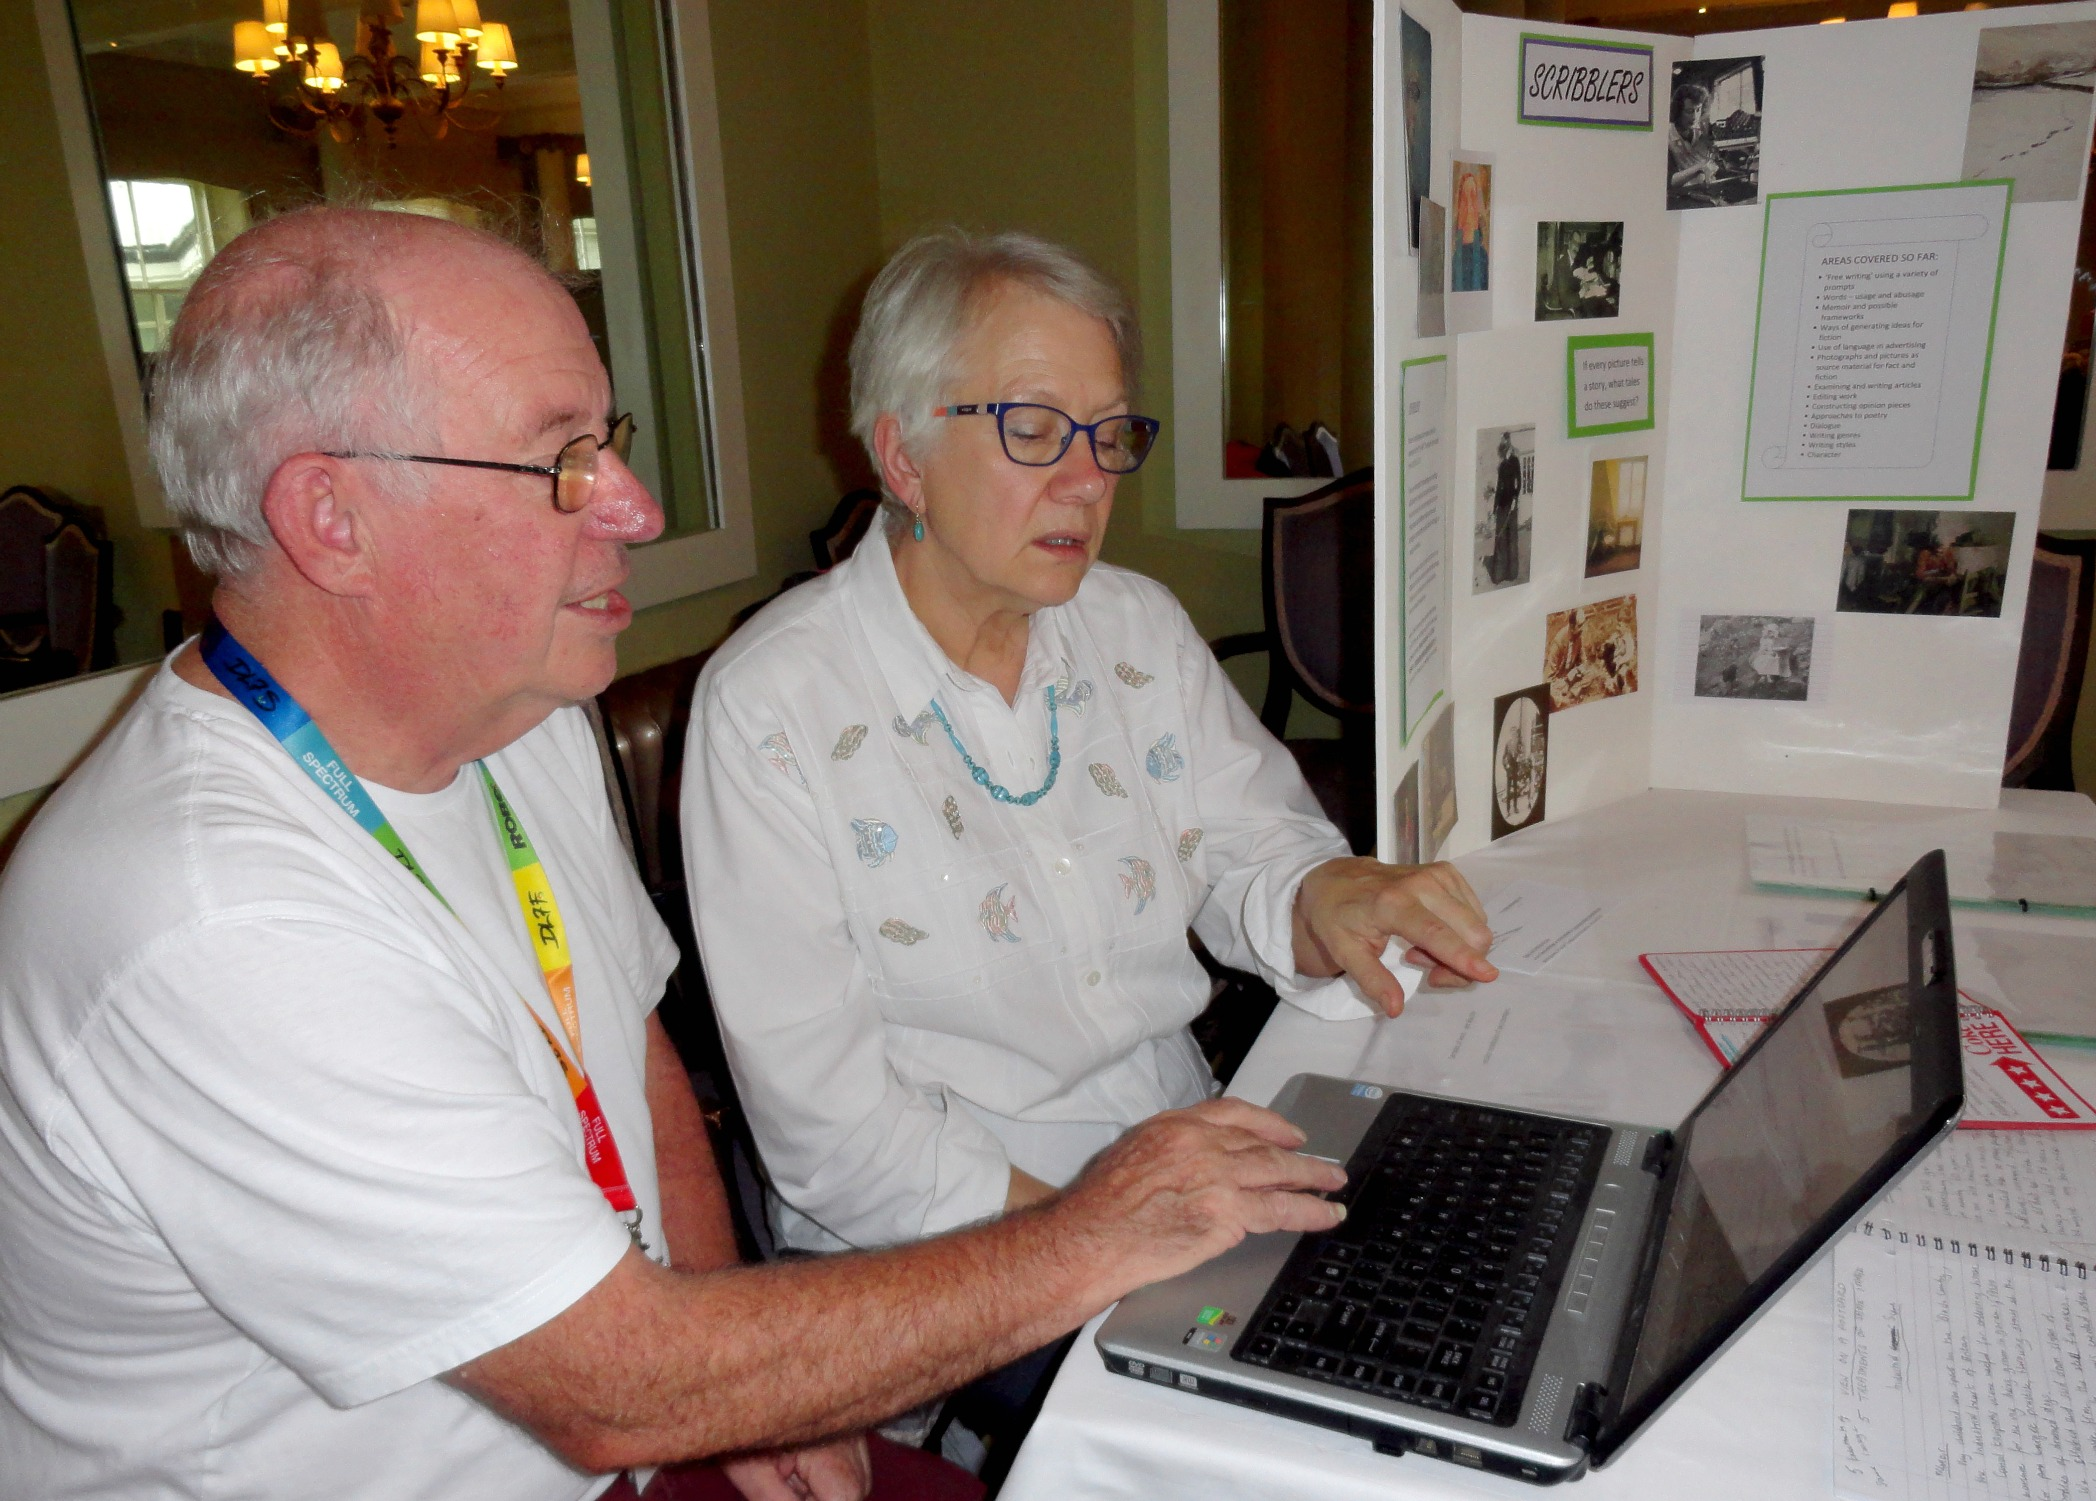 Sheila getting help with the web page